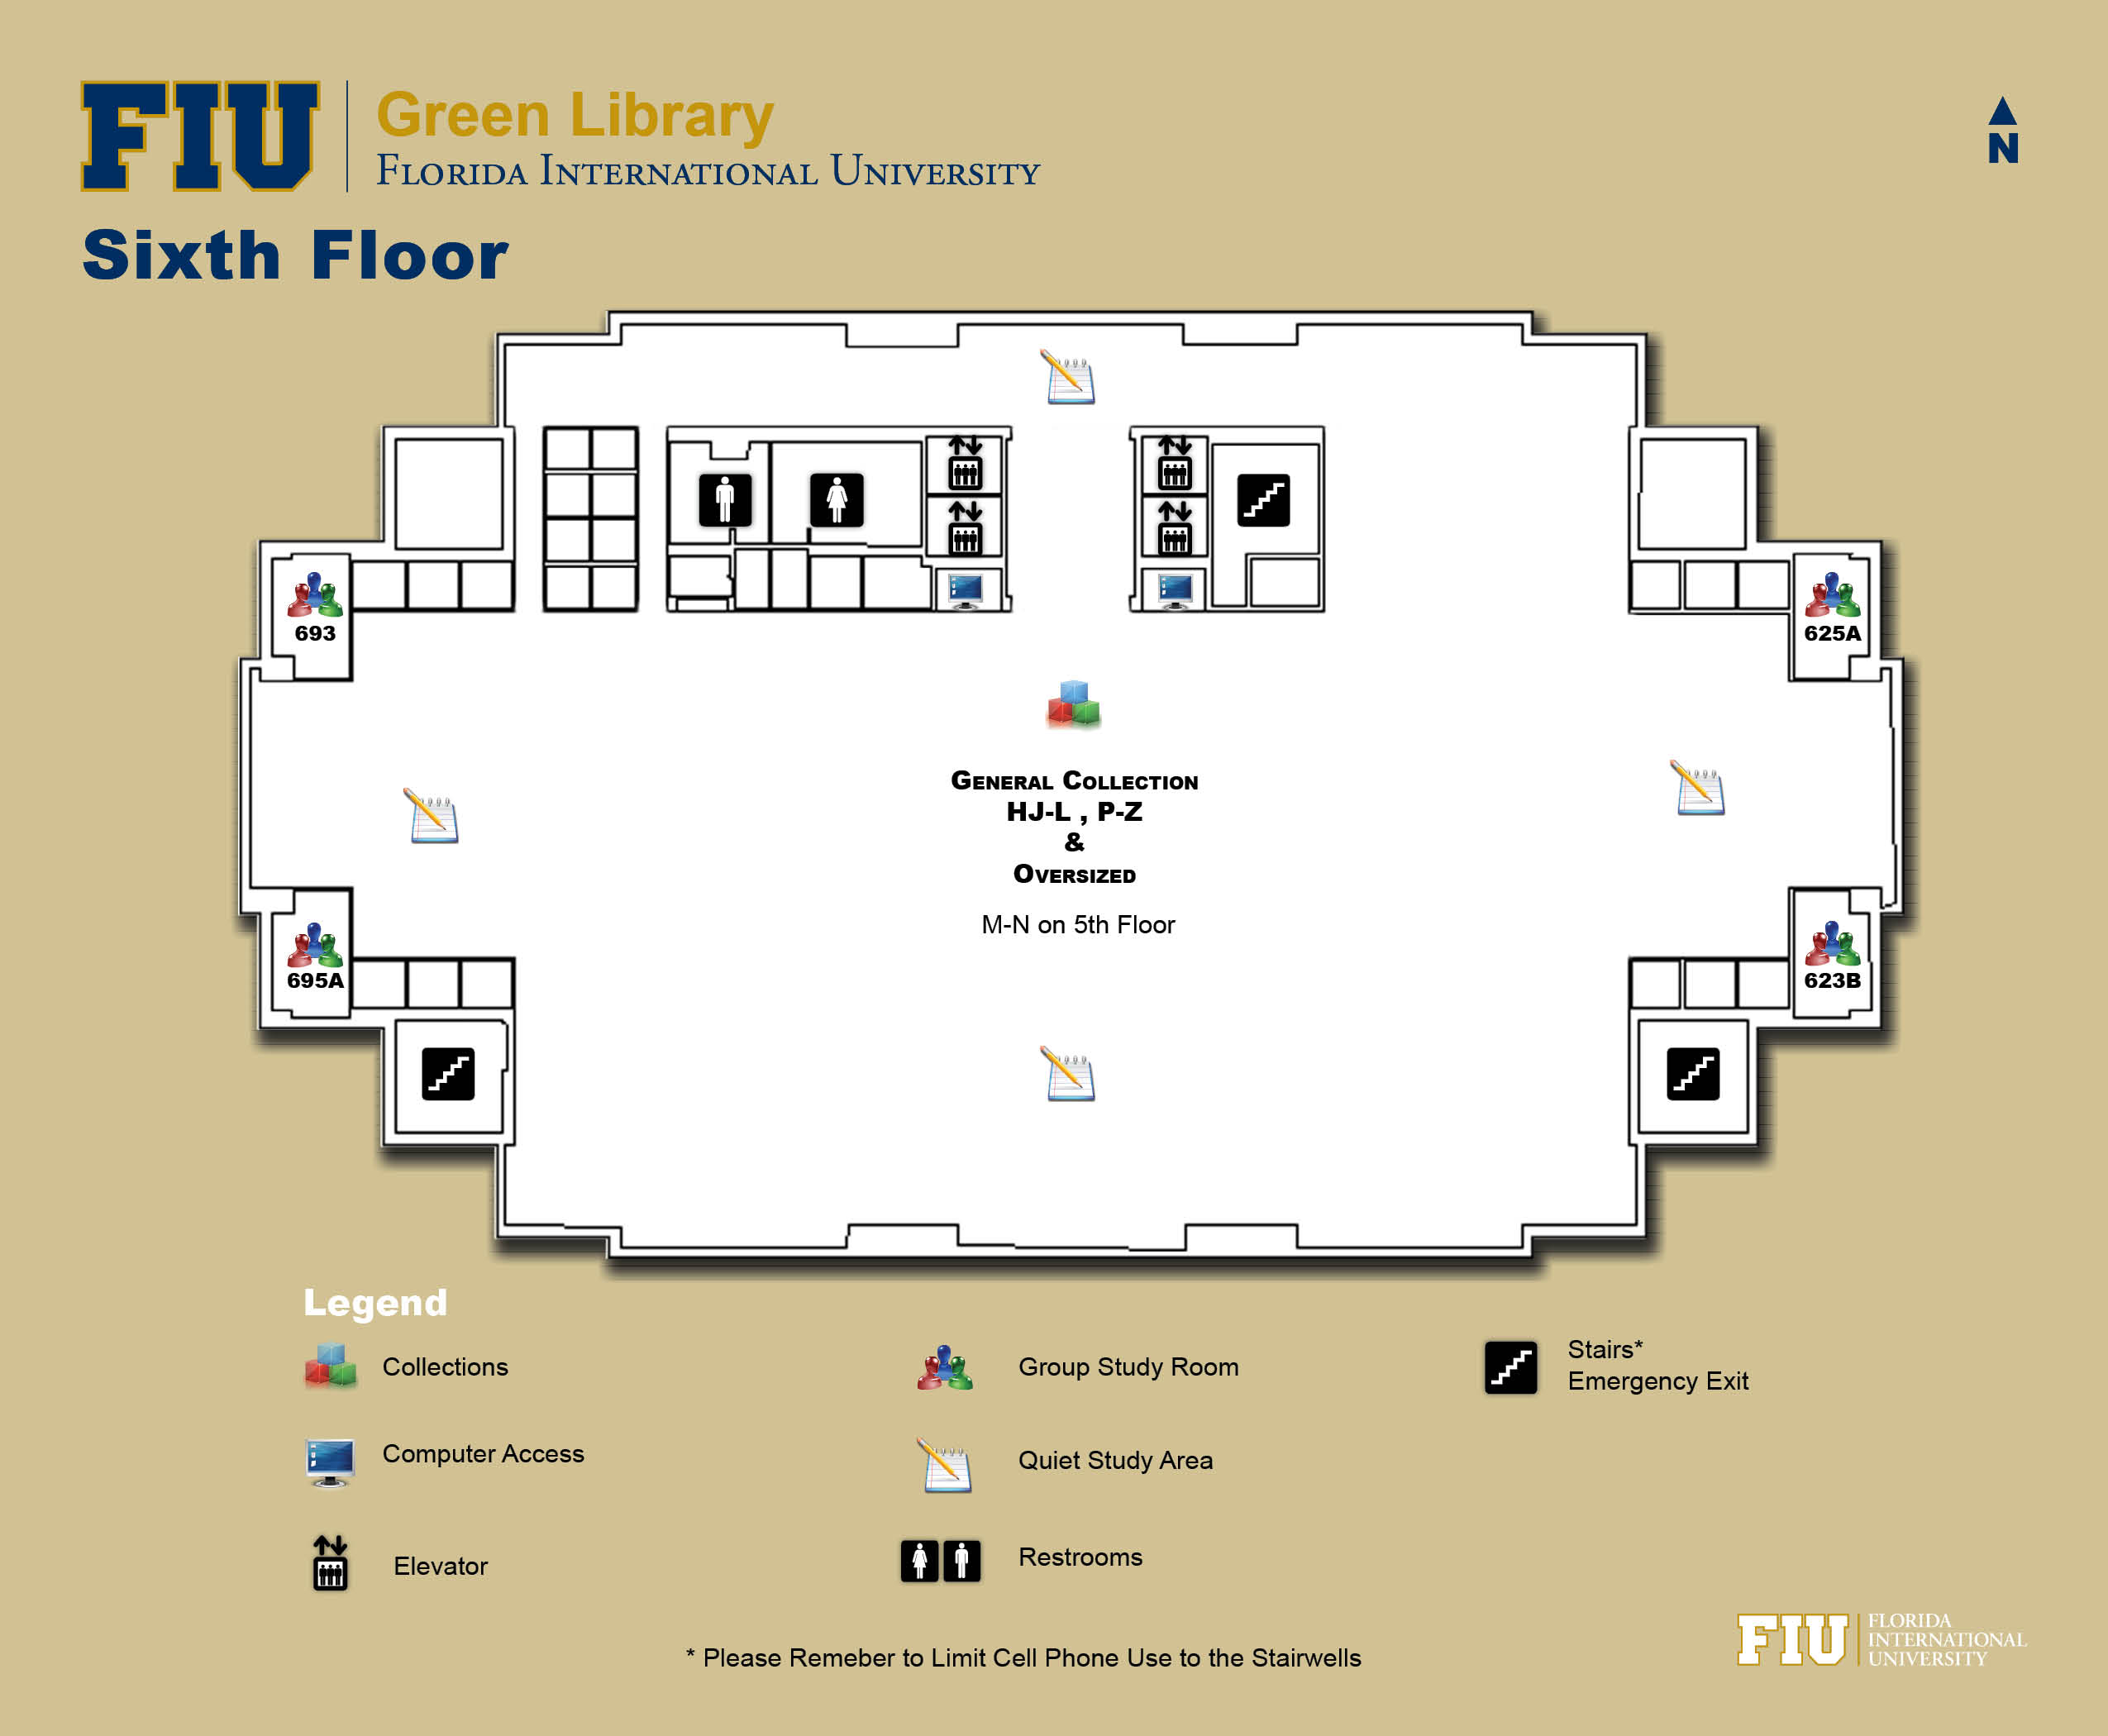 Floorplan for Floor 6 of Green Library